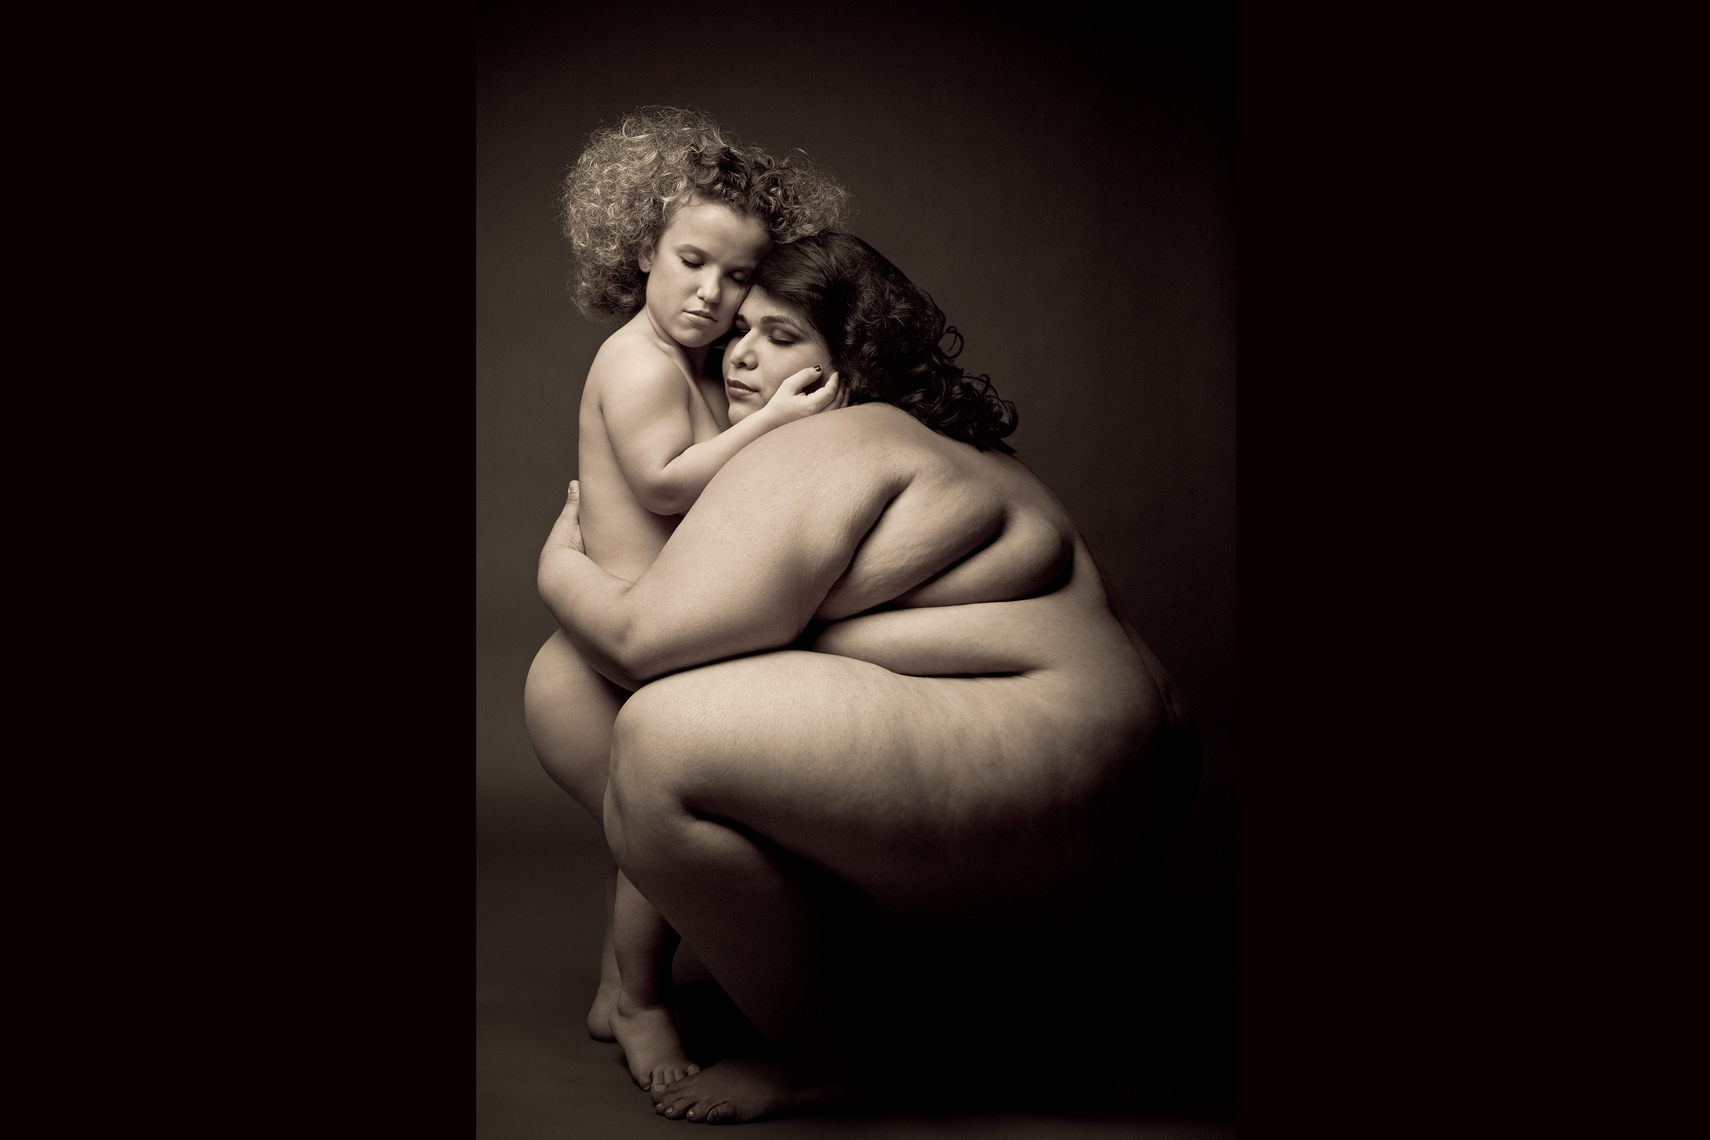 Los Angeles Portrait Photography, Michael Brian, pet, cat, 400 pound nude woman and dwarf, embracing, hugging, studio portrait